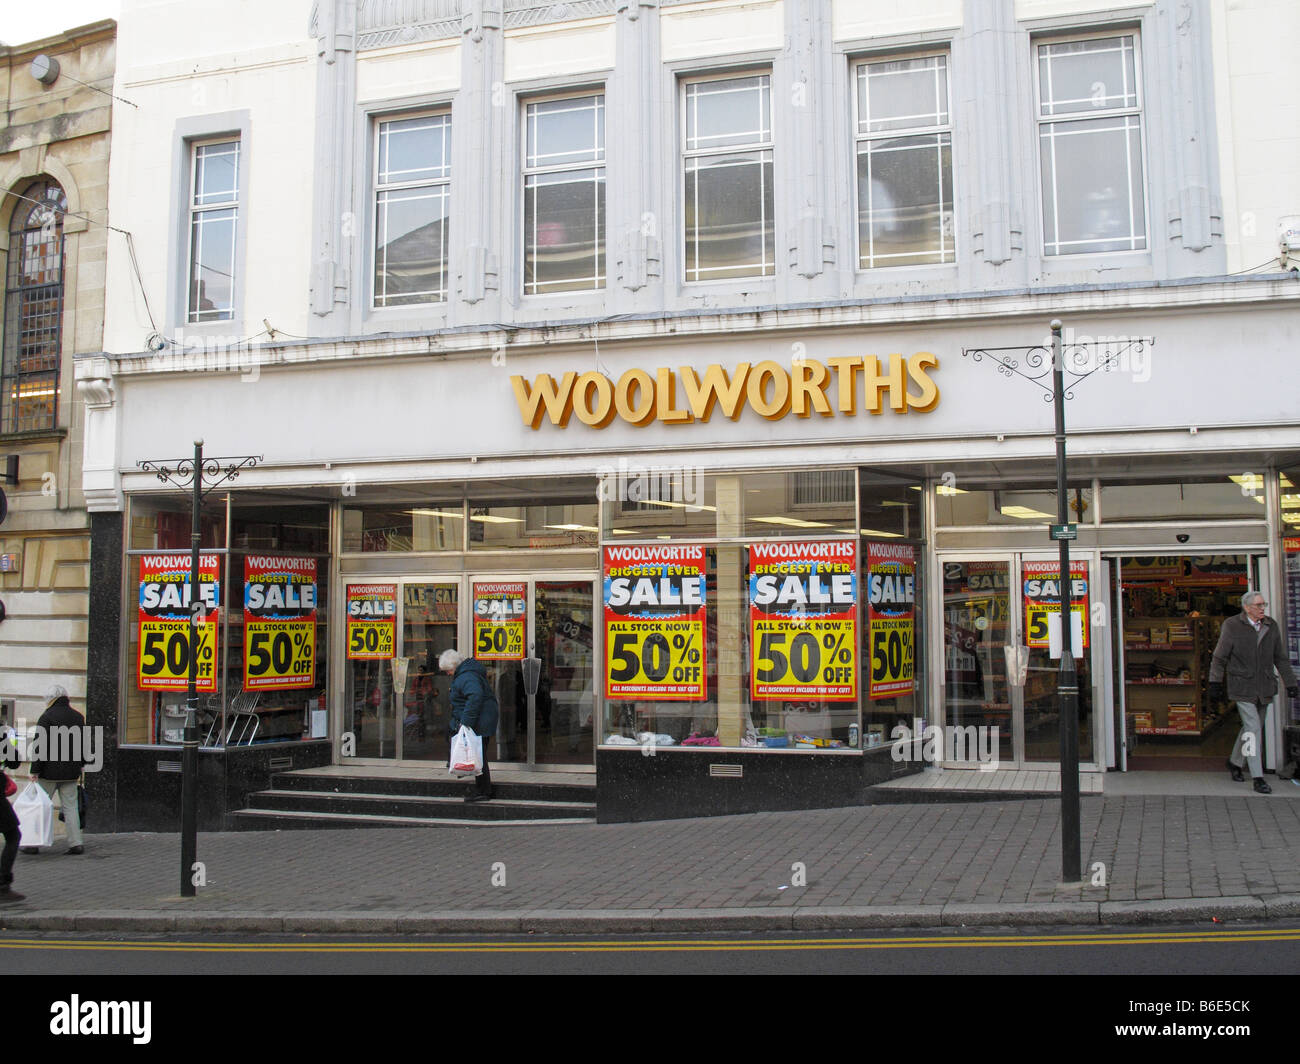 Woolworths store in Malvern Worcestershire on the first day of a store closure sale - Stock Image